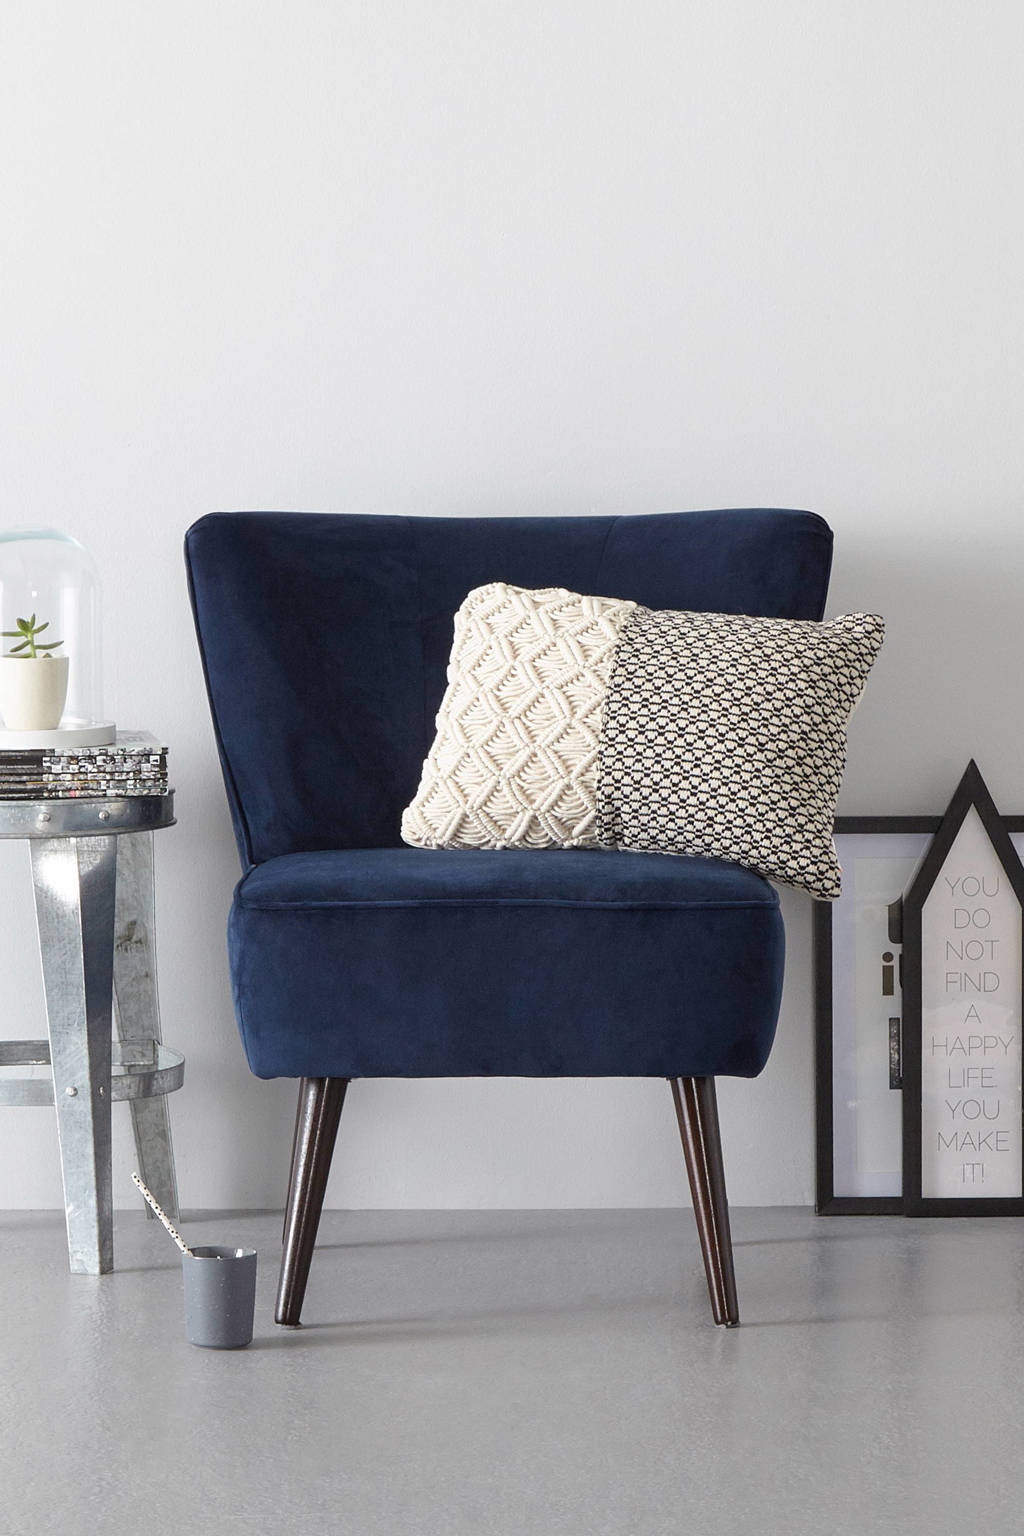 whkmp's own fauteuil Coco velours, Donkerblauw